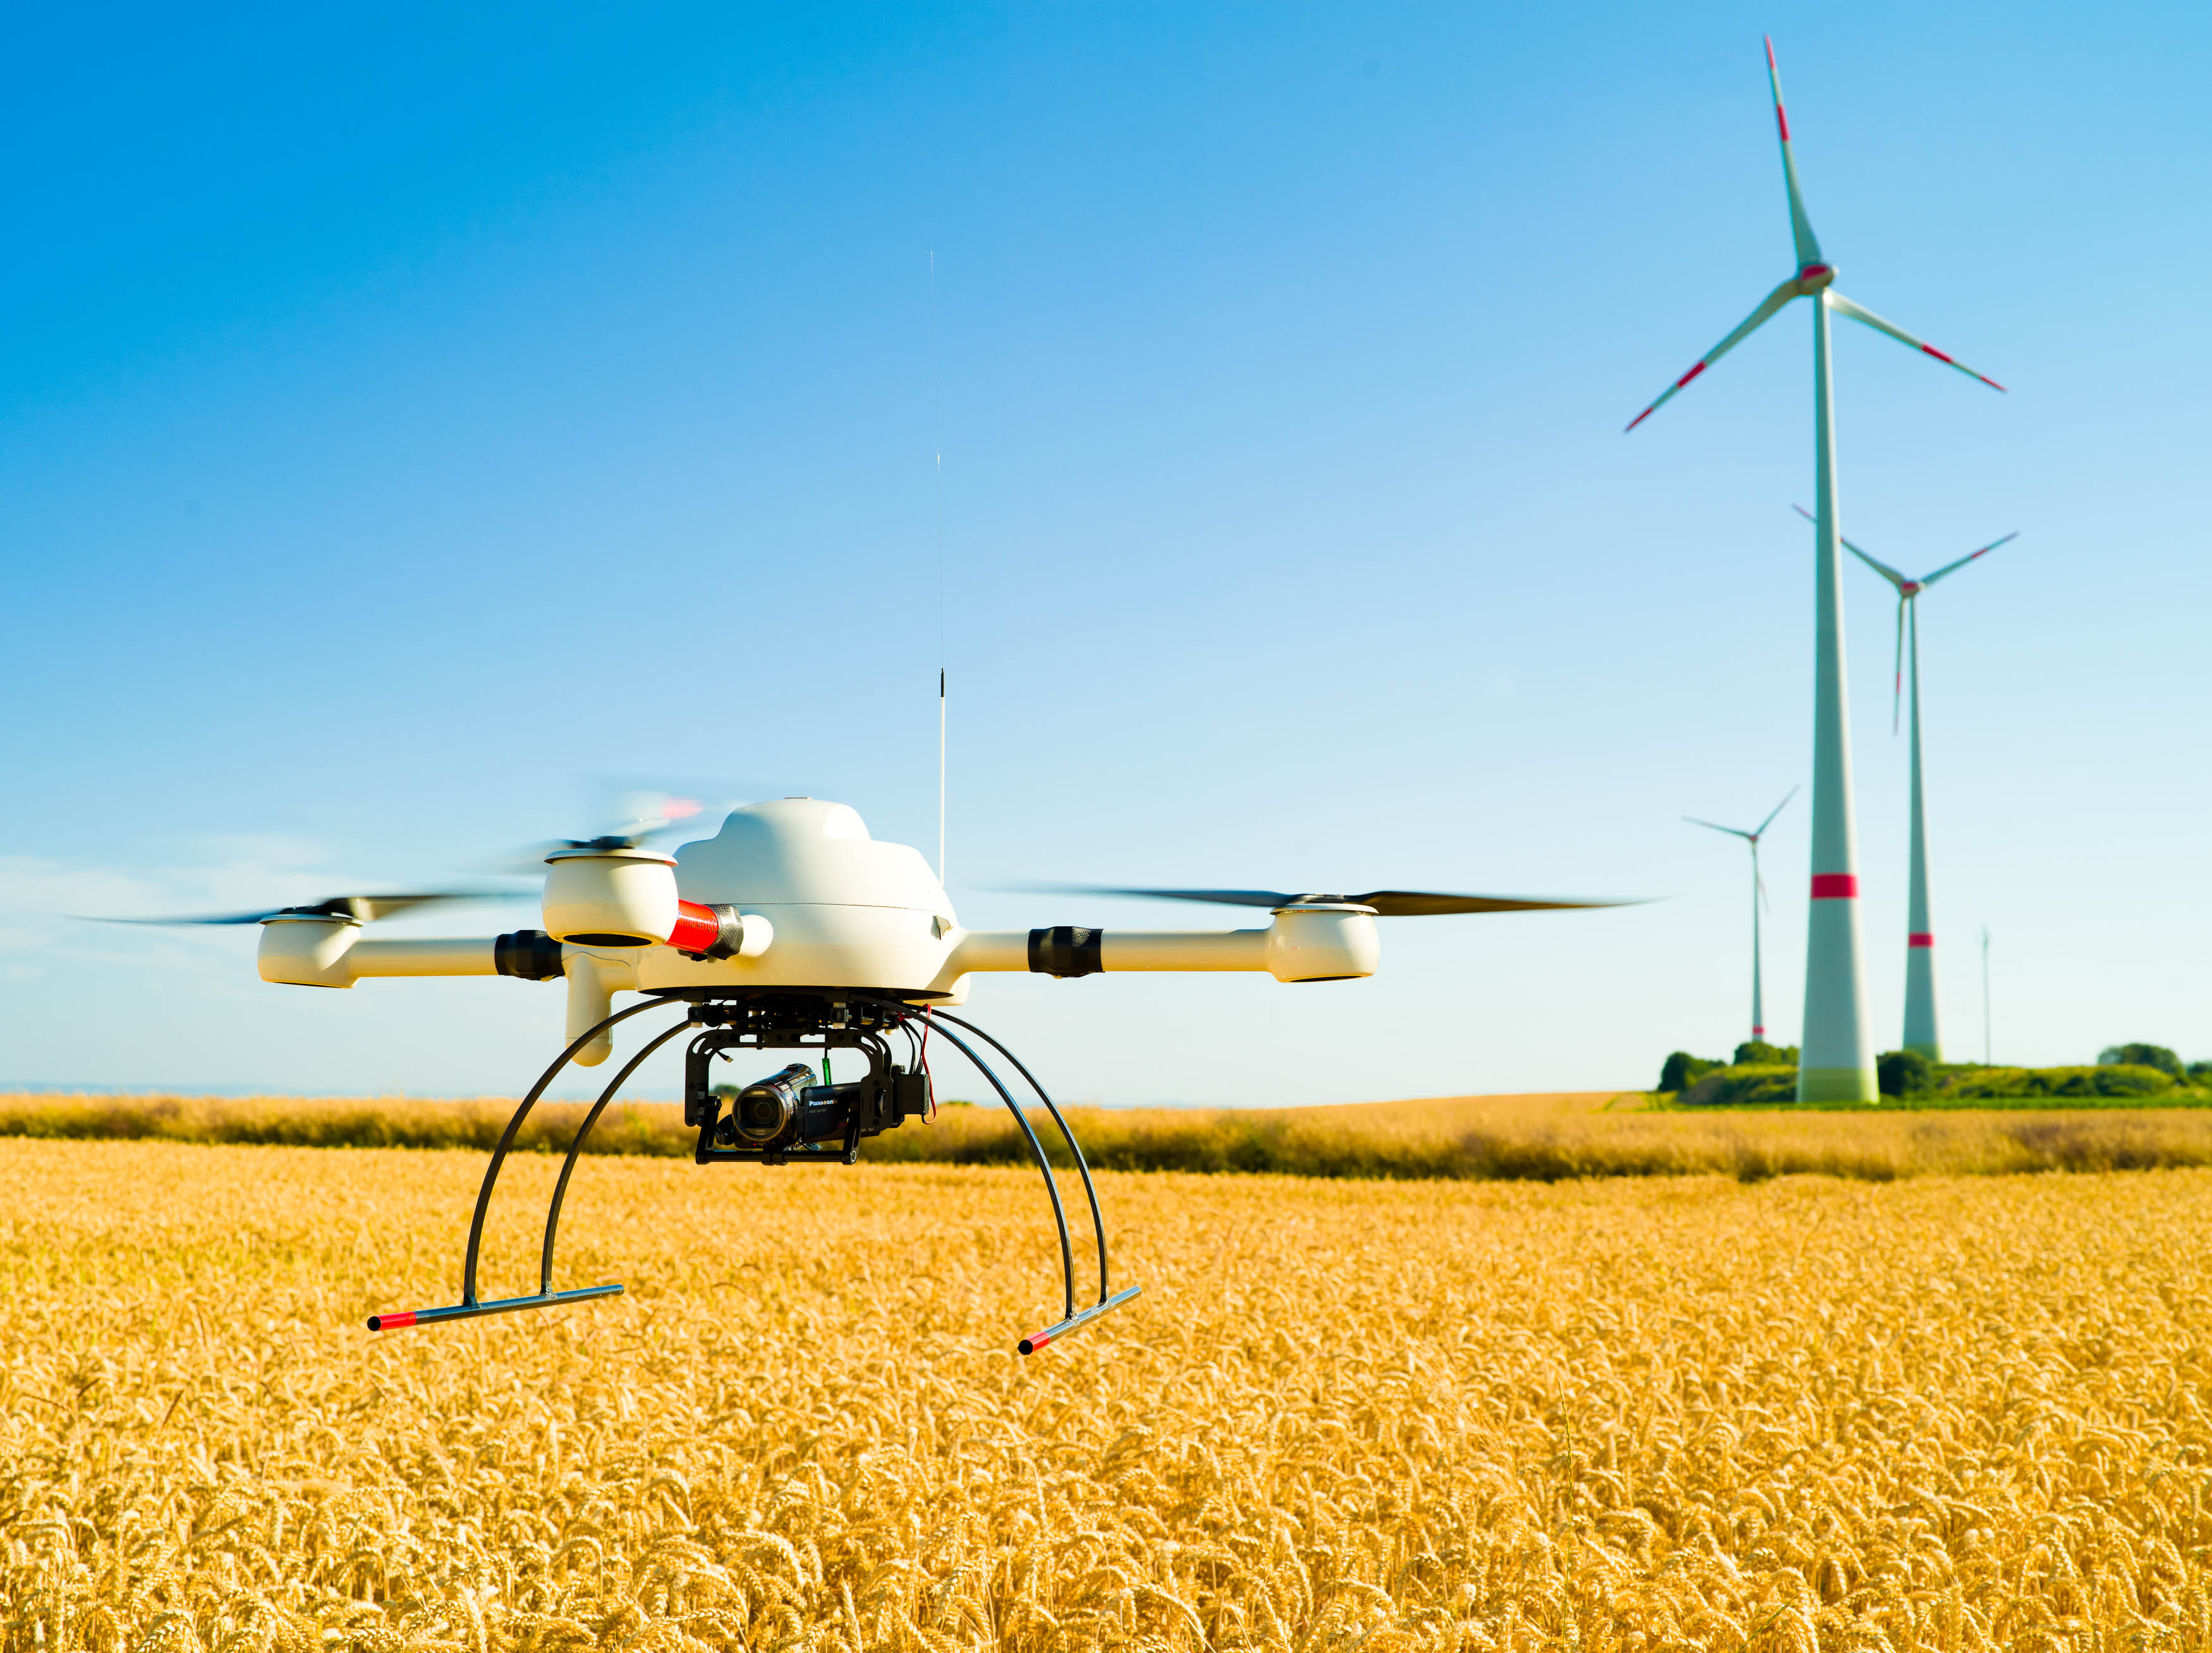 geonovus-offer-unmanned-aerial-mapping-packages-to-microdrones-to-surveying-companies